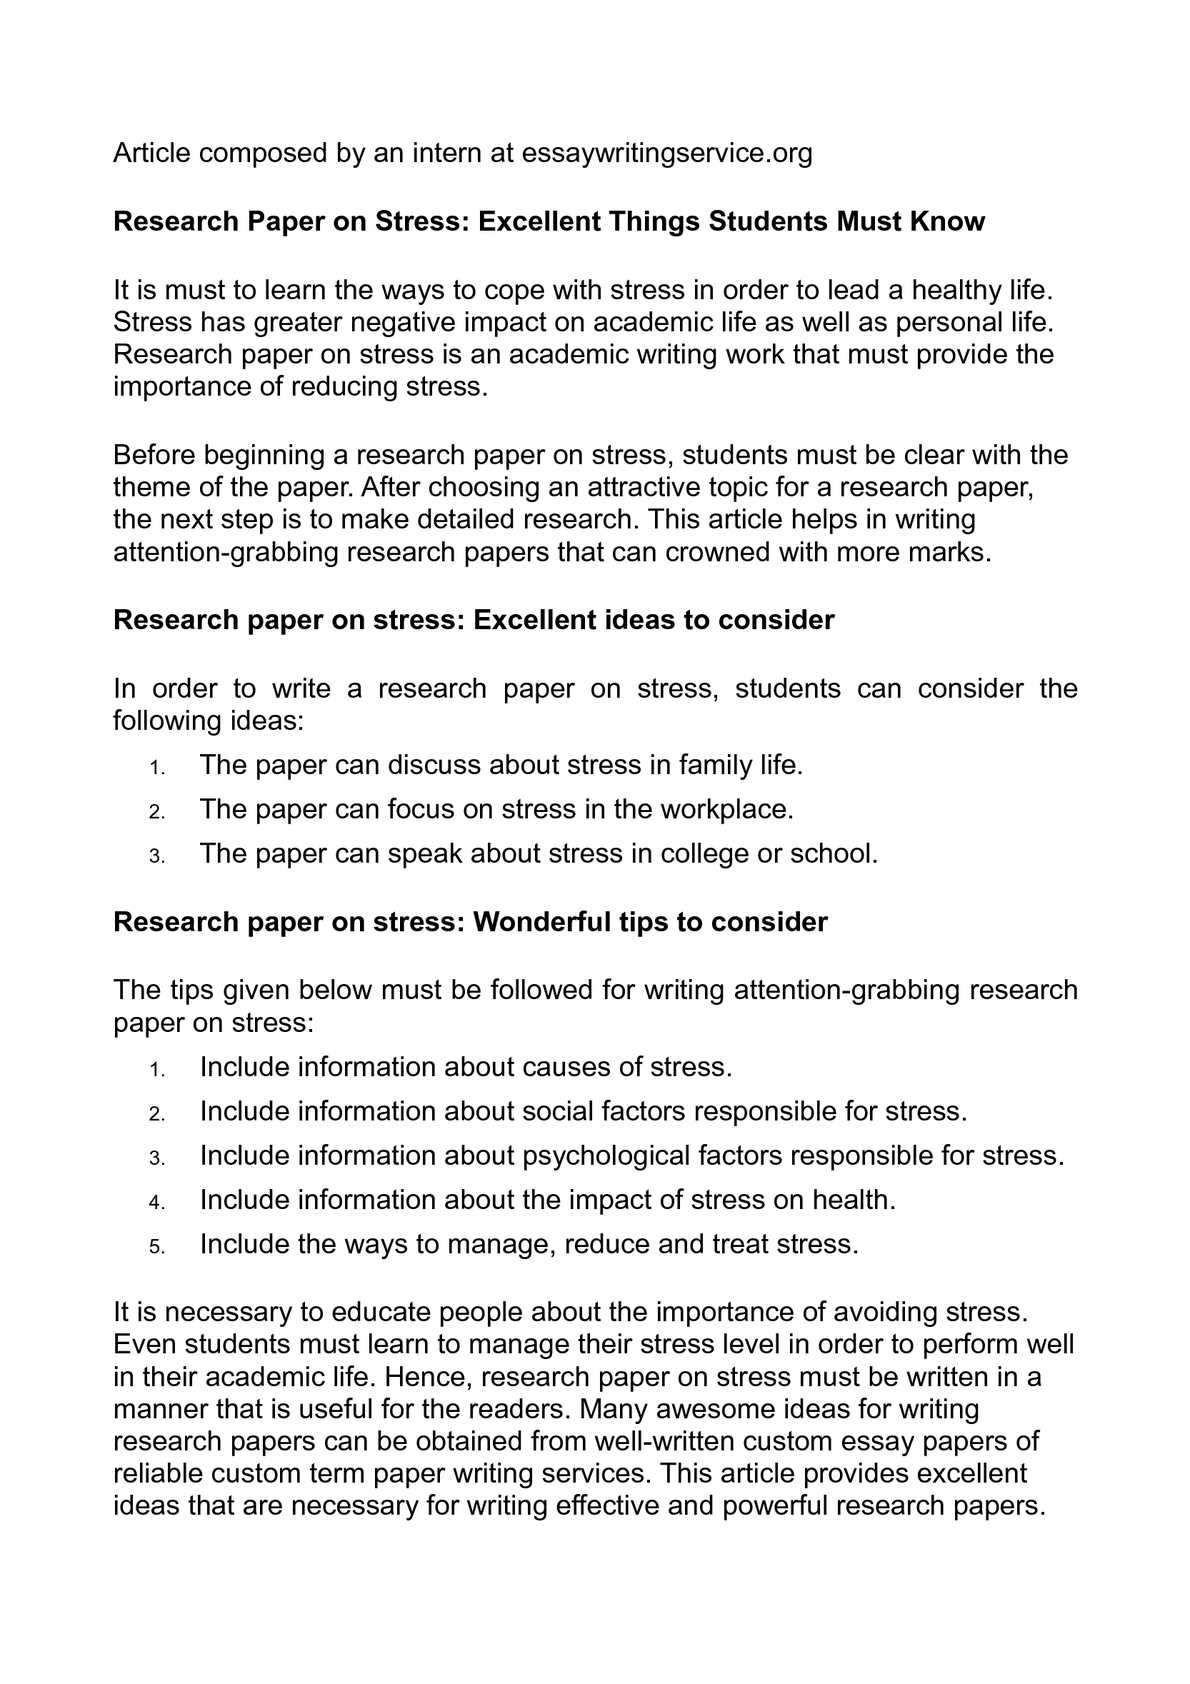 001 Research Paper Psychology Topics Stress Beautiful Full